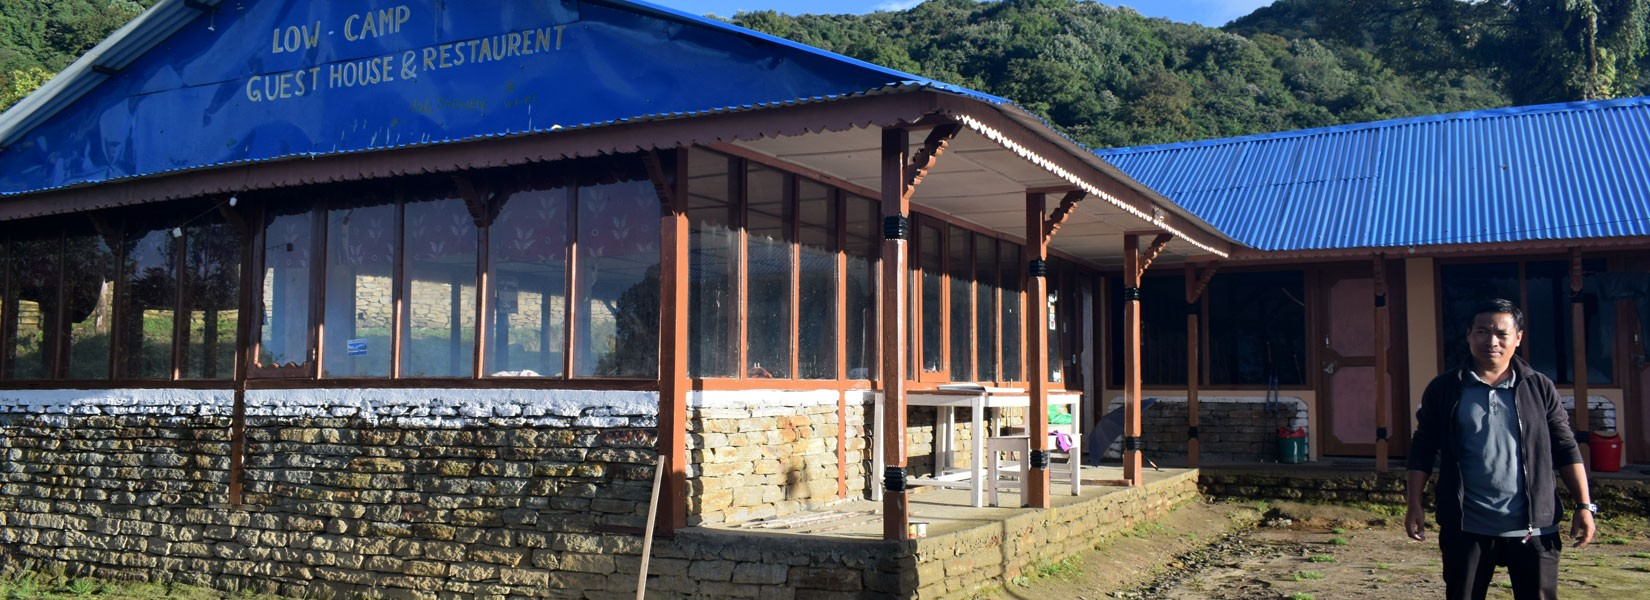 A Guest House at Low Camp in Mardi Himal Trek Route